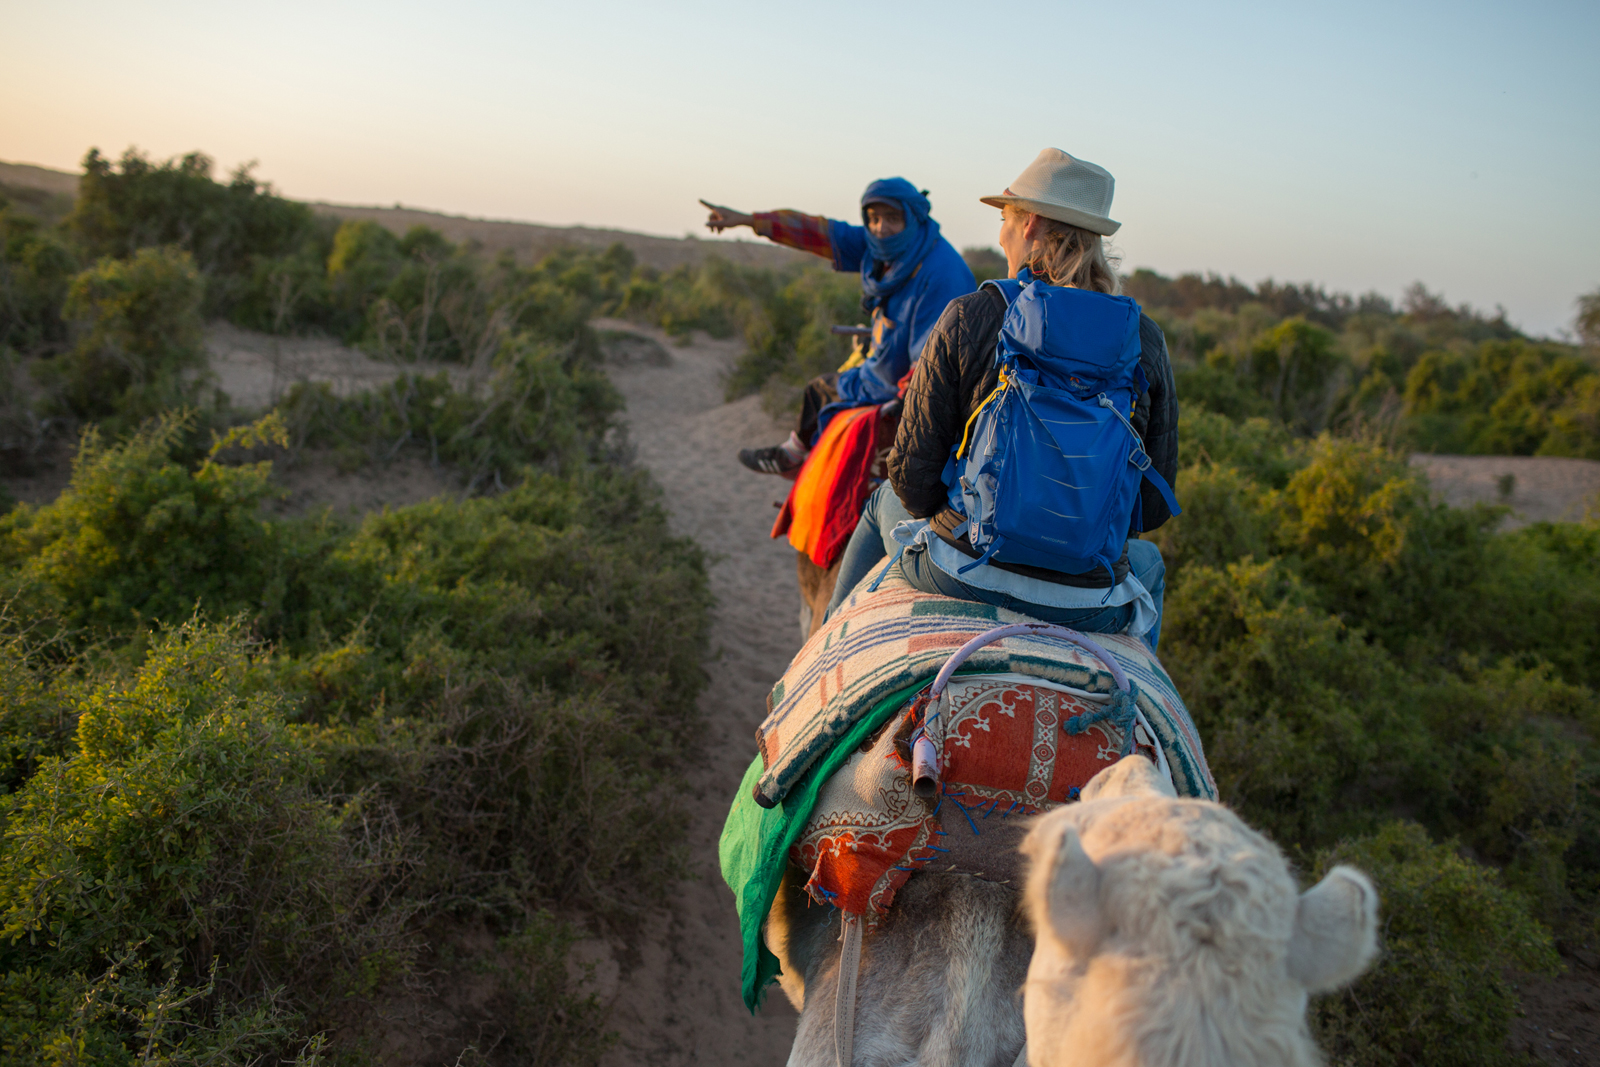 If My Bag Could Talk with Adventure Photographer Erika Skogg